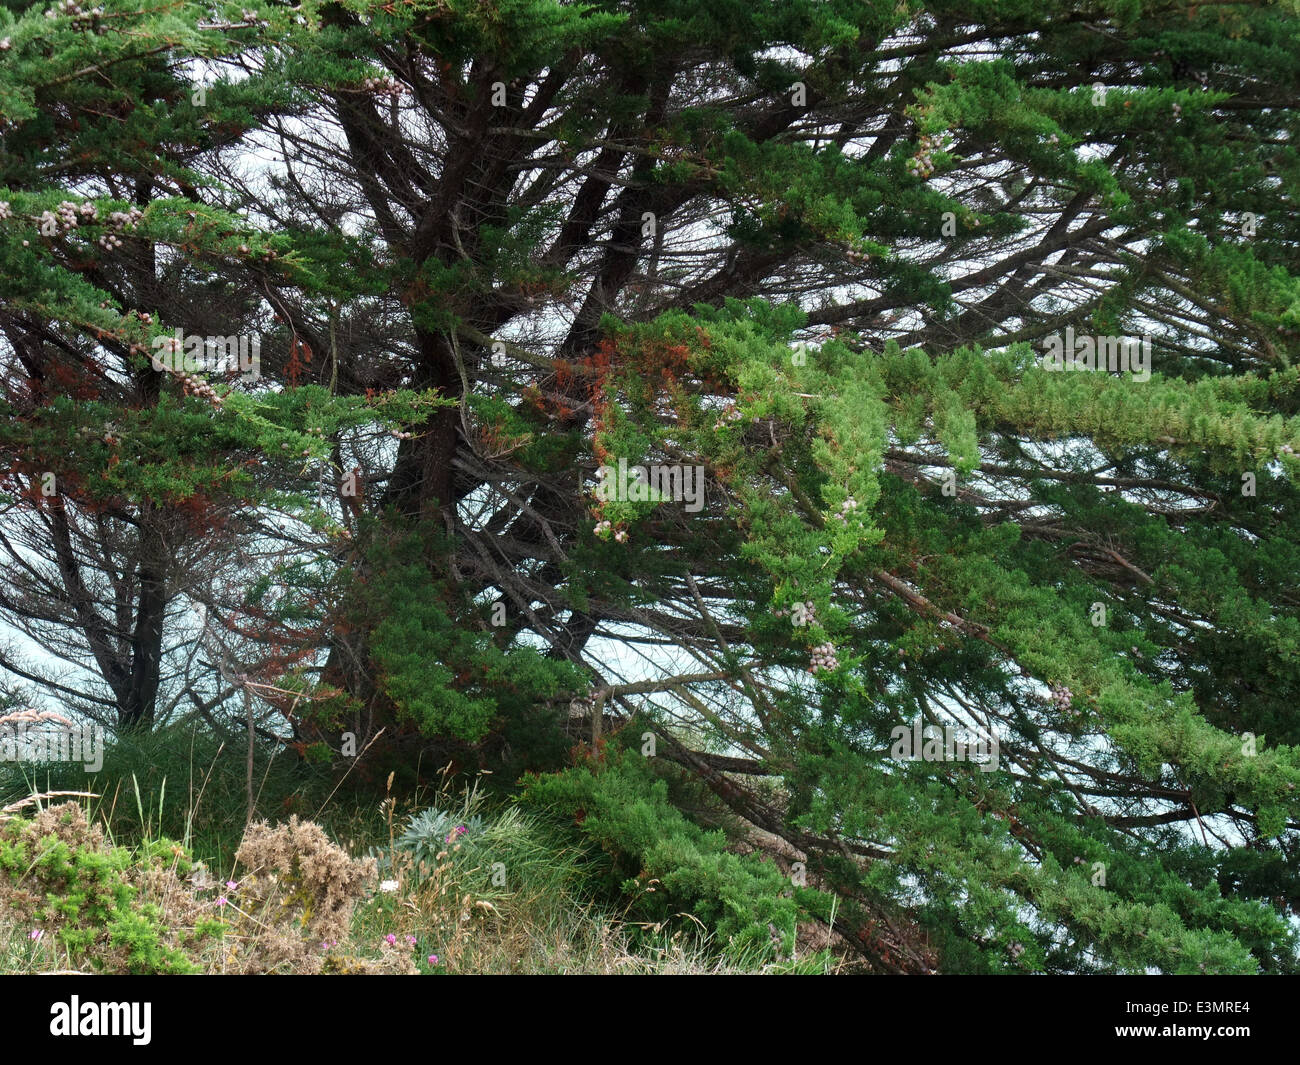 conifer detail seen at Cap Frehel in Brittany, France - Stock Image